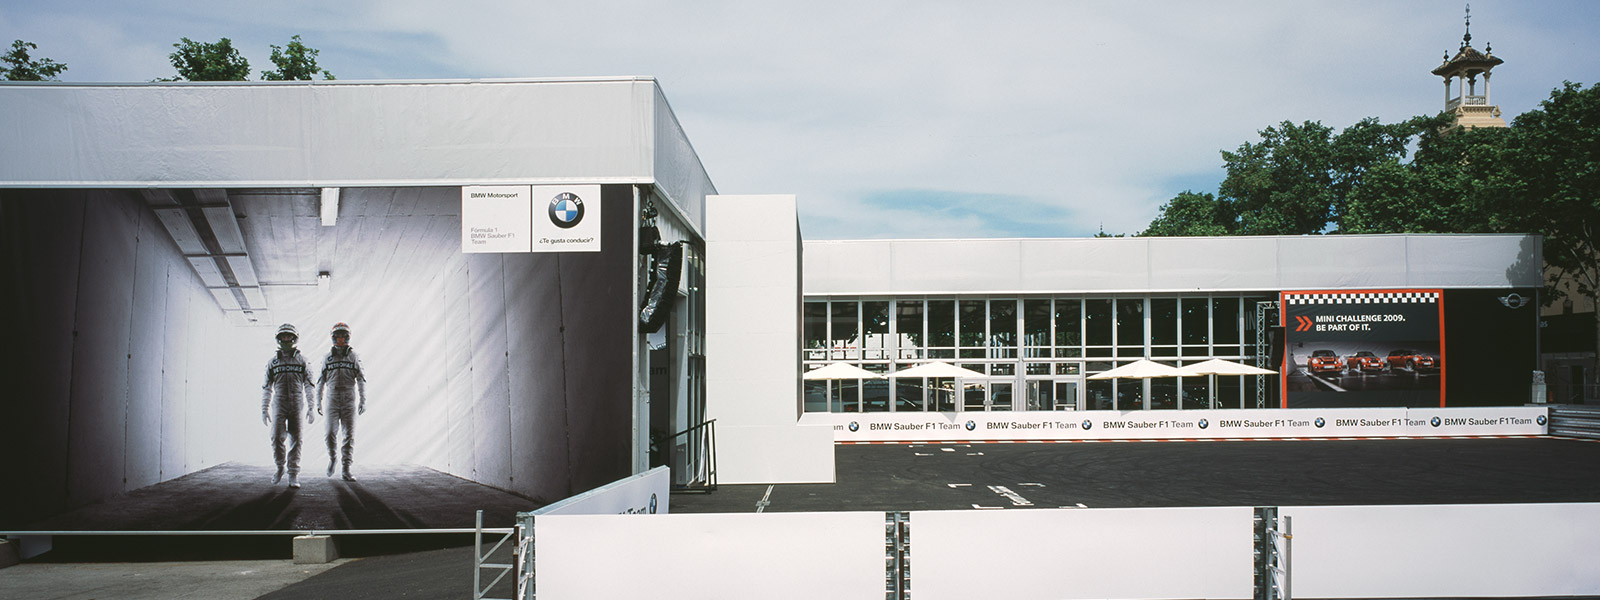 Eventhalle SOLUTION - Showhalle mit alea - BMW